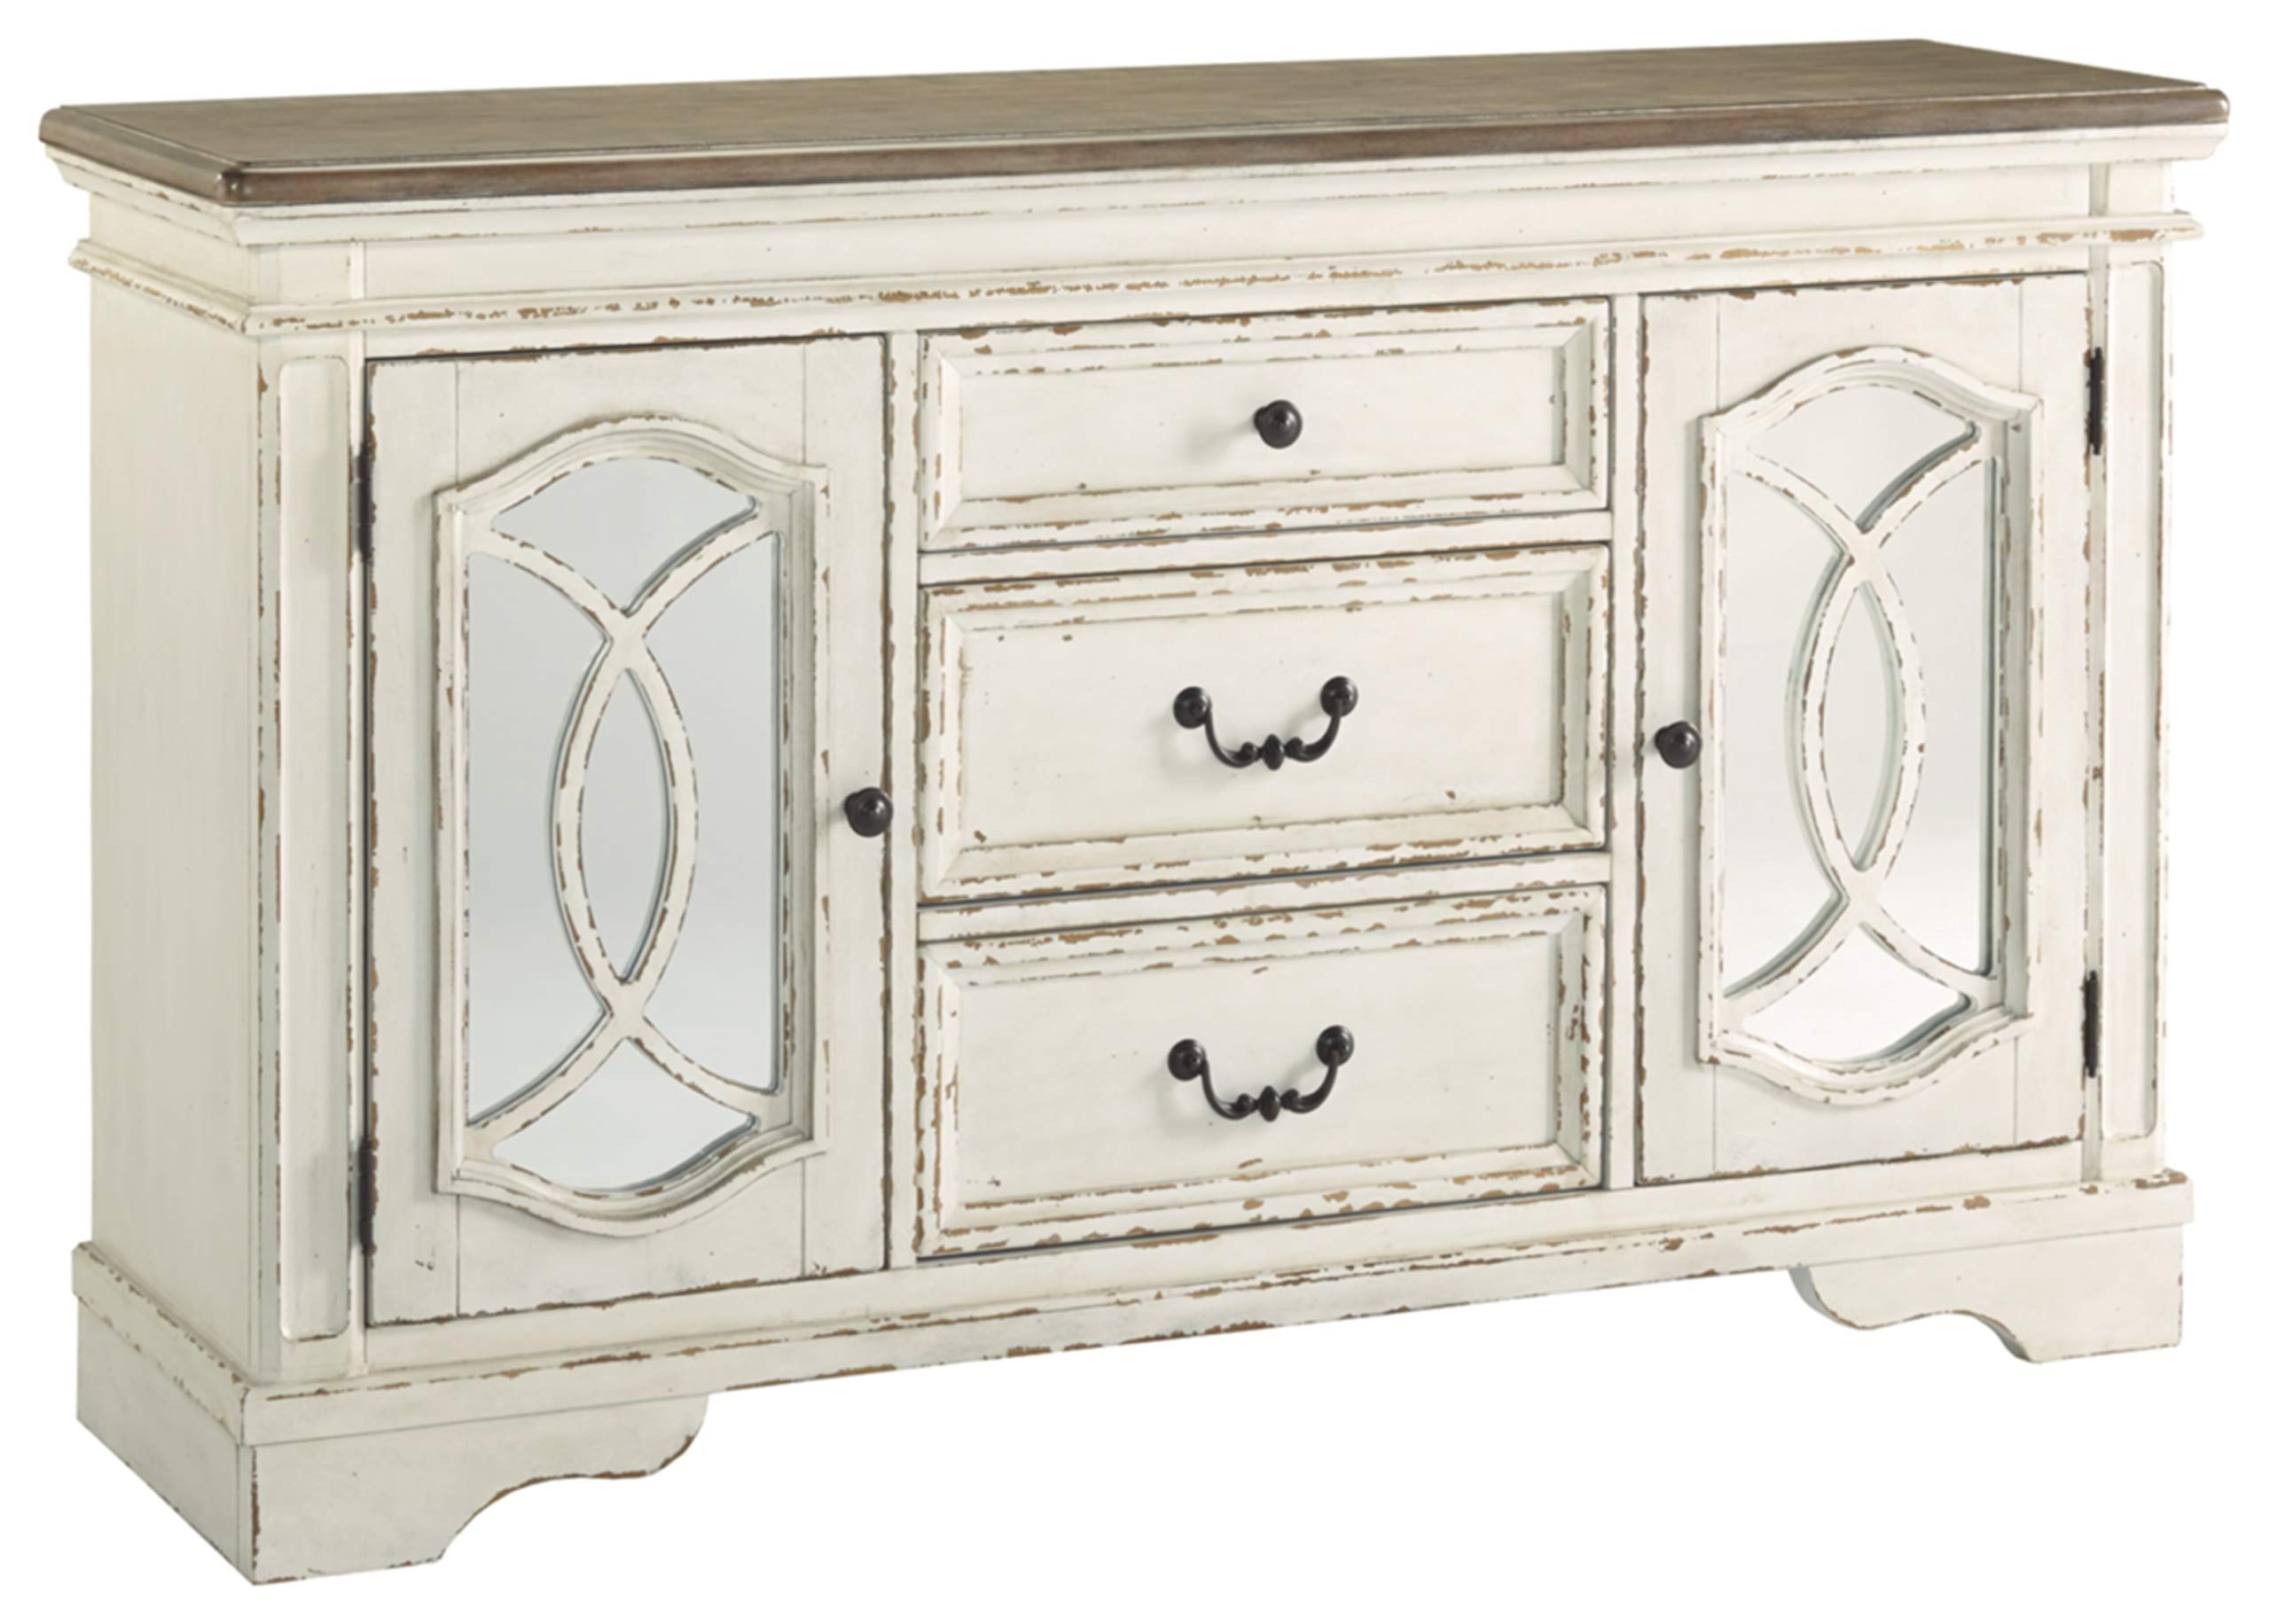 Signature Design By Ashley - Realyn Dining Room Server - Casual Style - Chipped White by Signature Design by Ashley